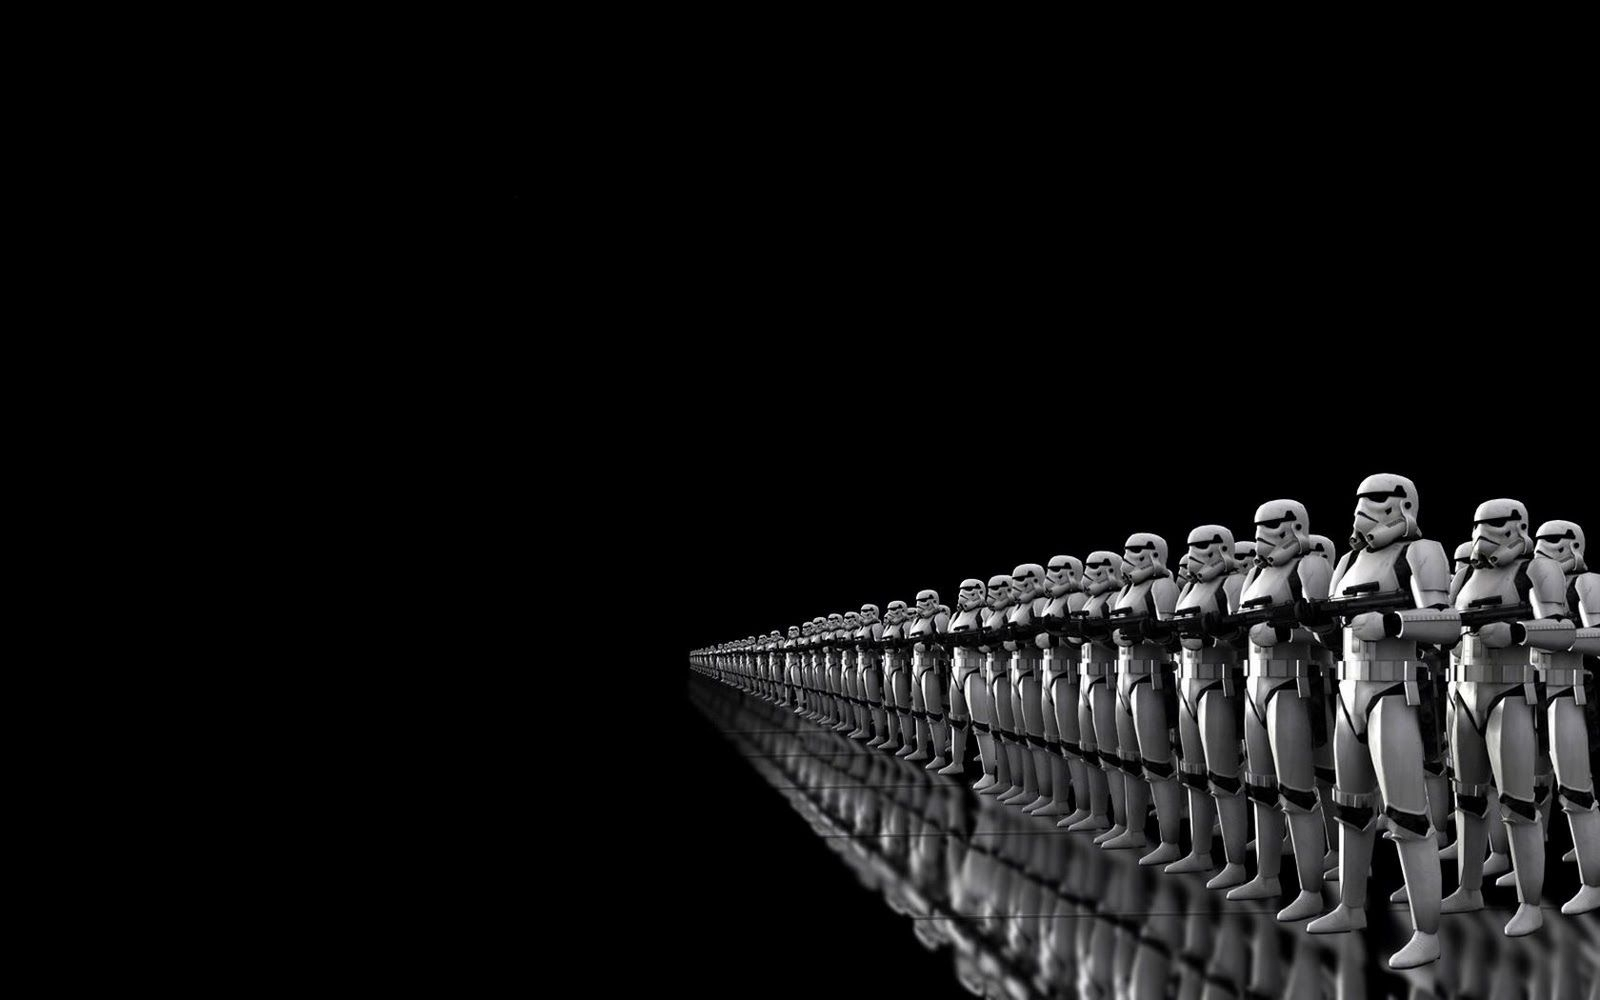 star wars | cool star wars backgrounds | may the force be with you